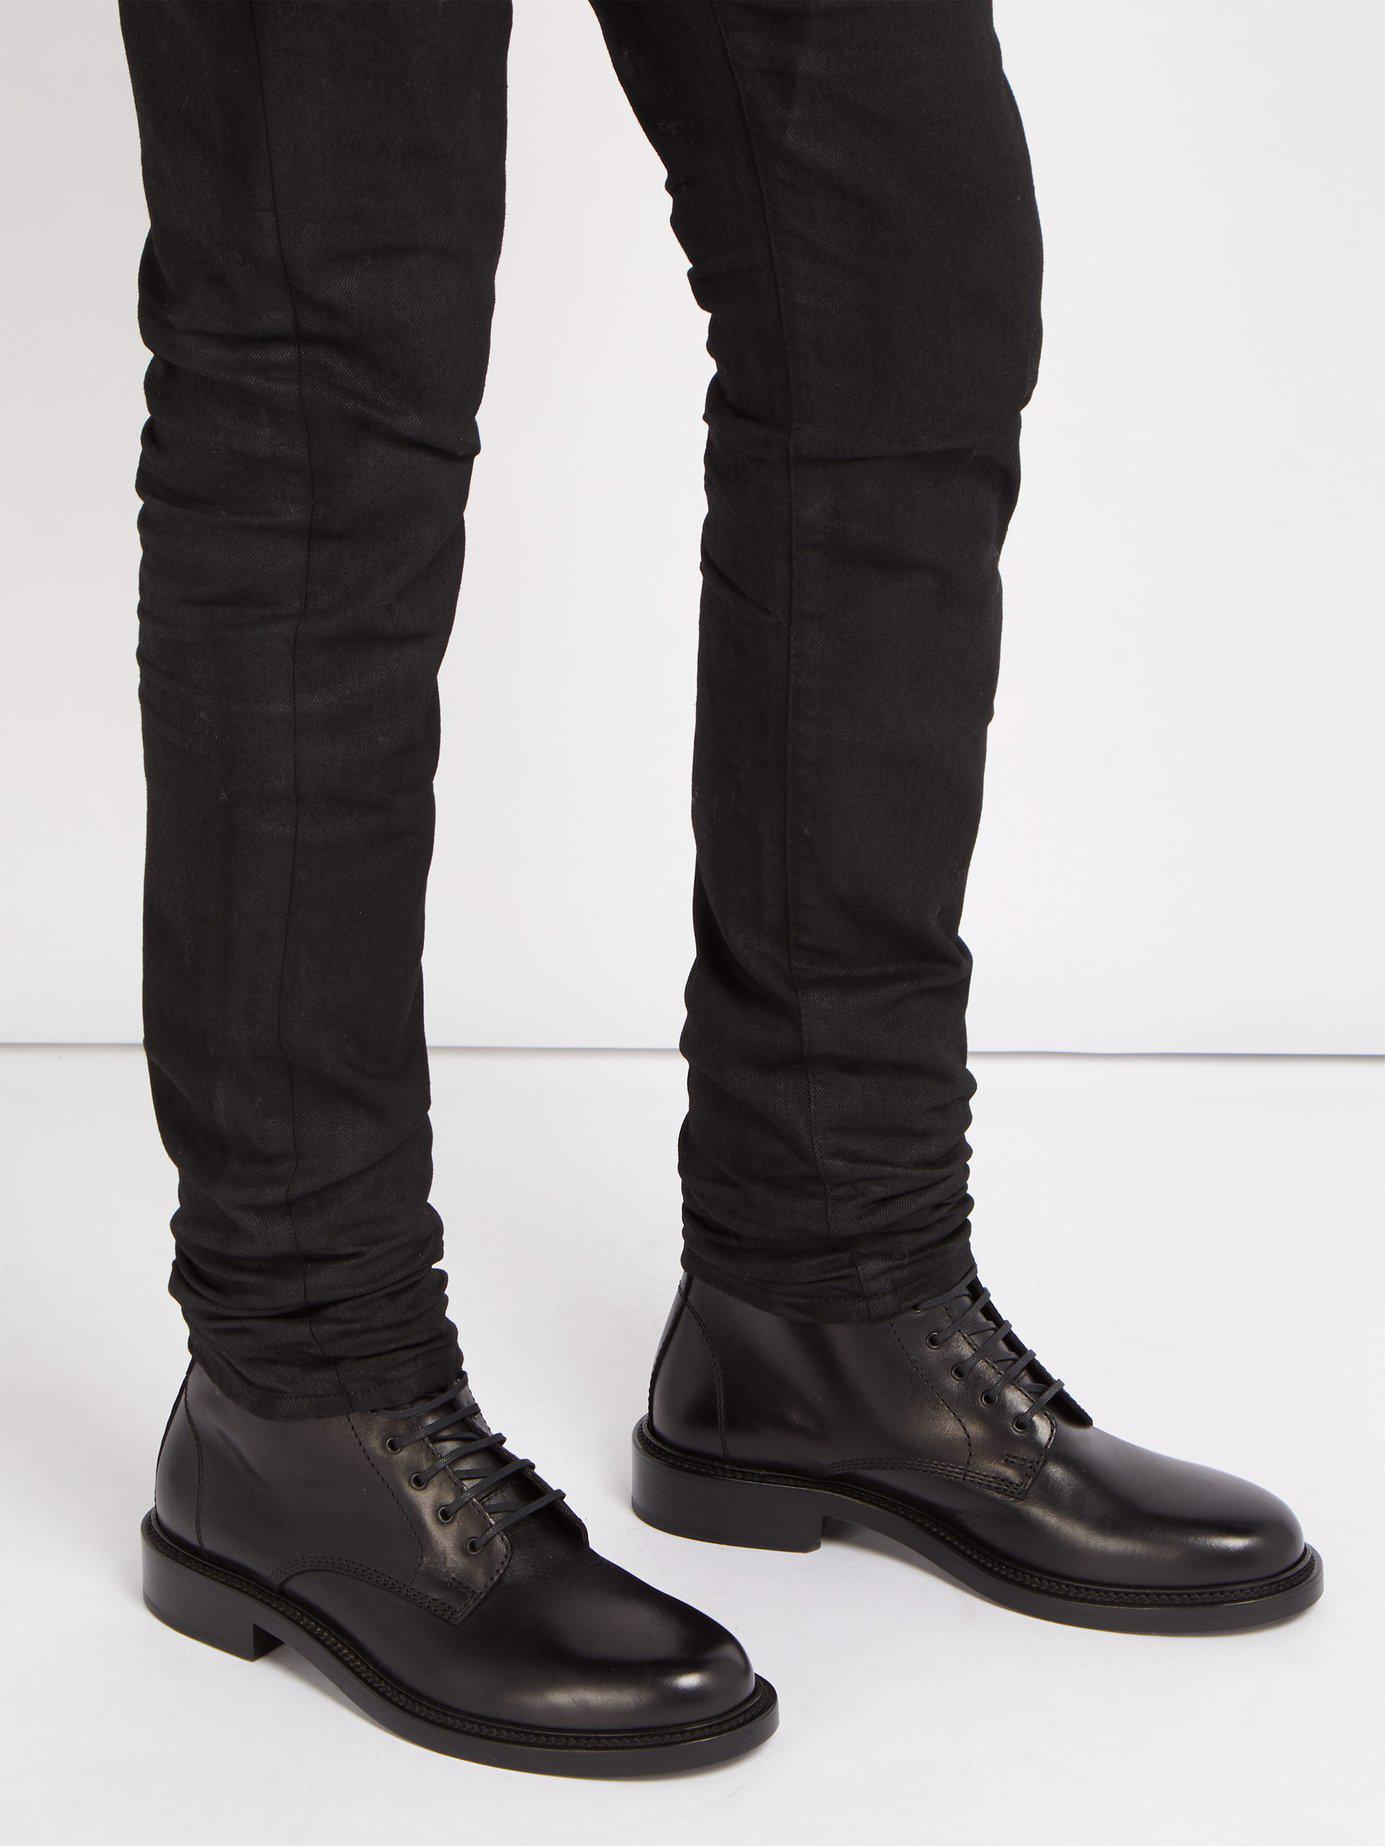 b10c93448f1 Saint Laurent Timothy Lace Up Leather Boots in Black for Men - Lyst